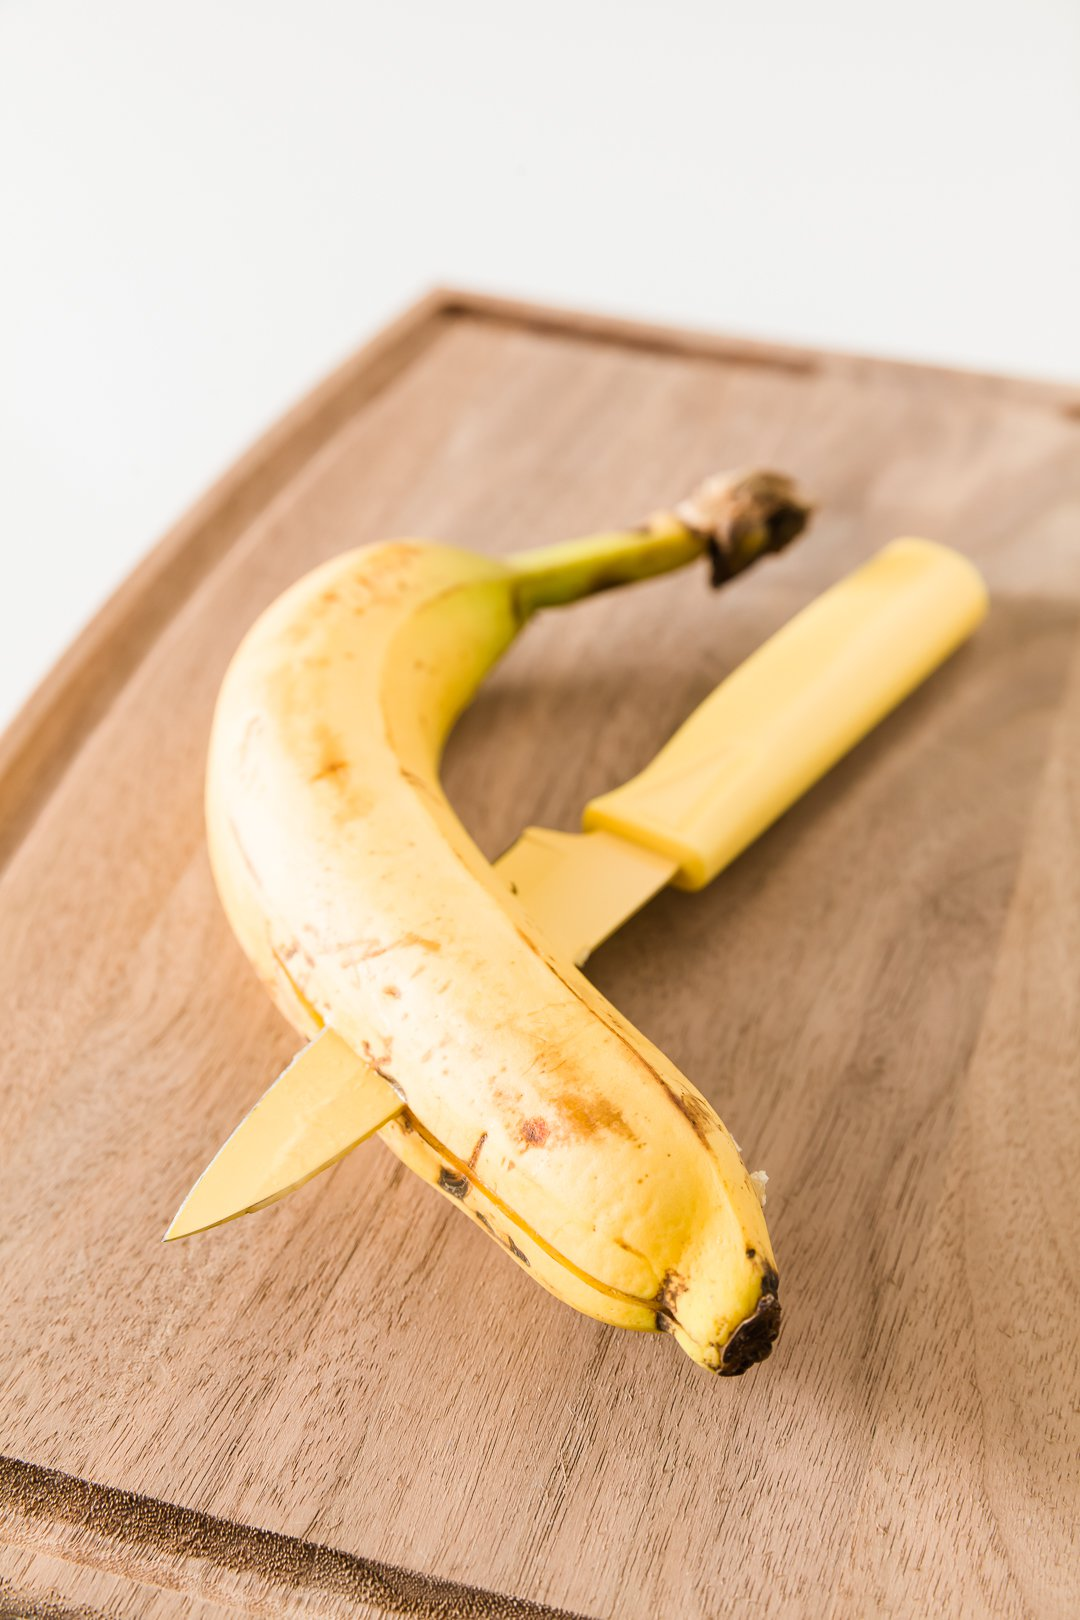 A knife slicing a banana